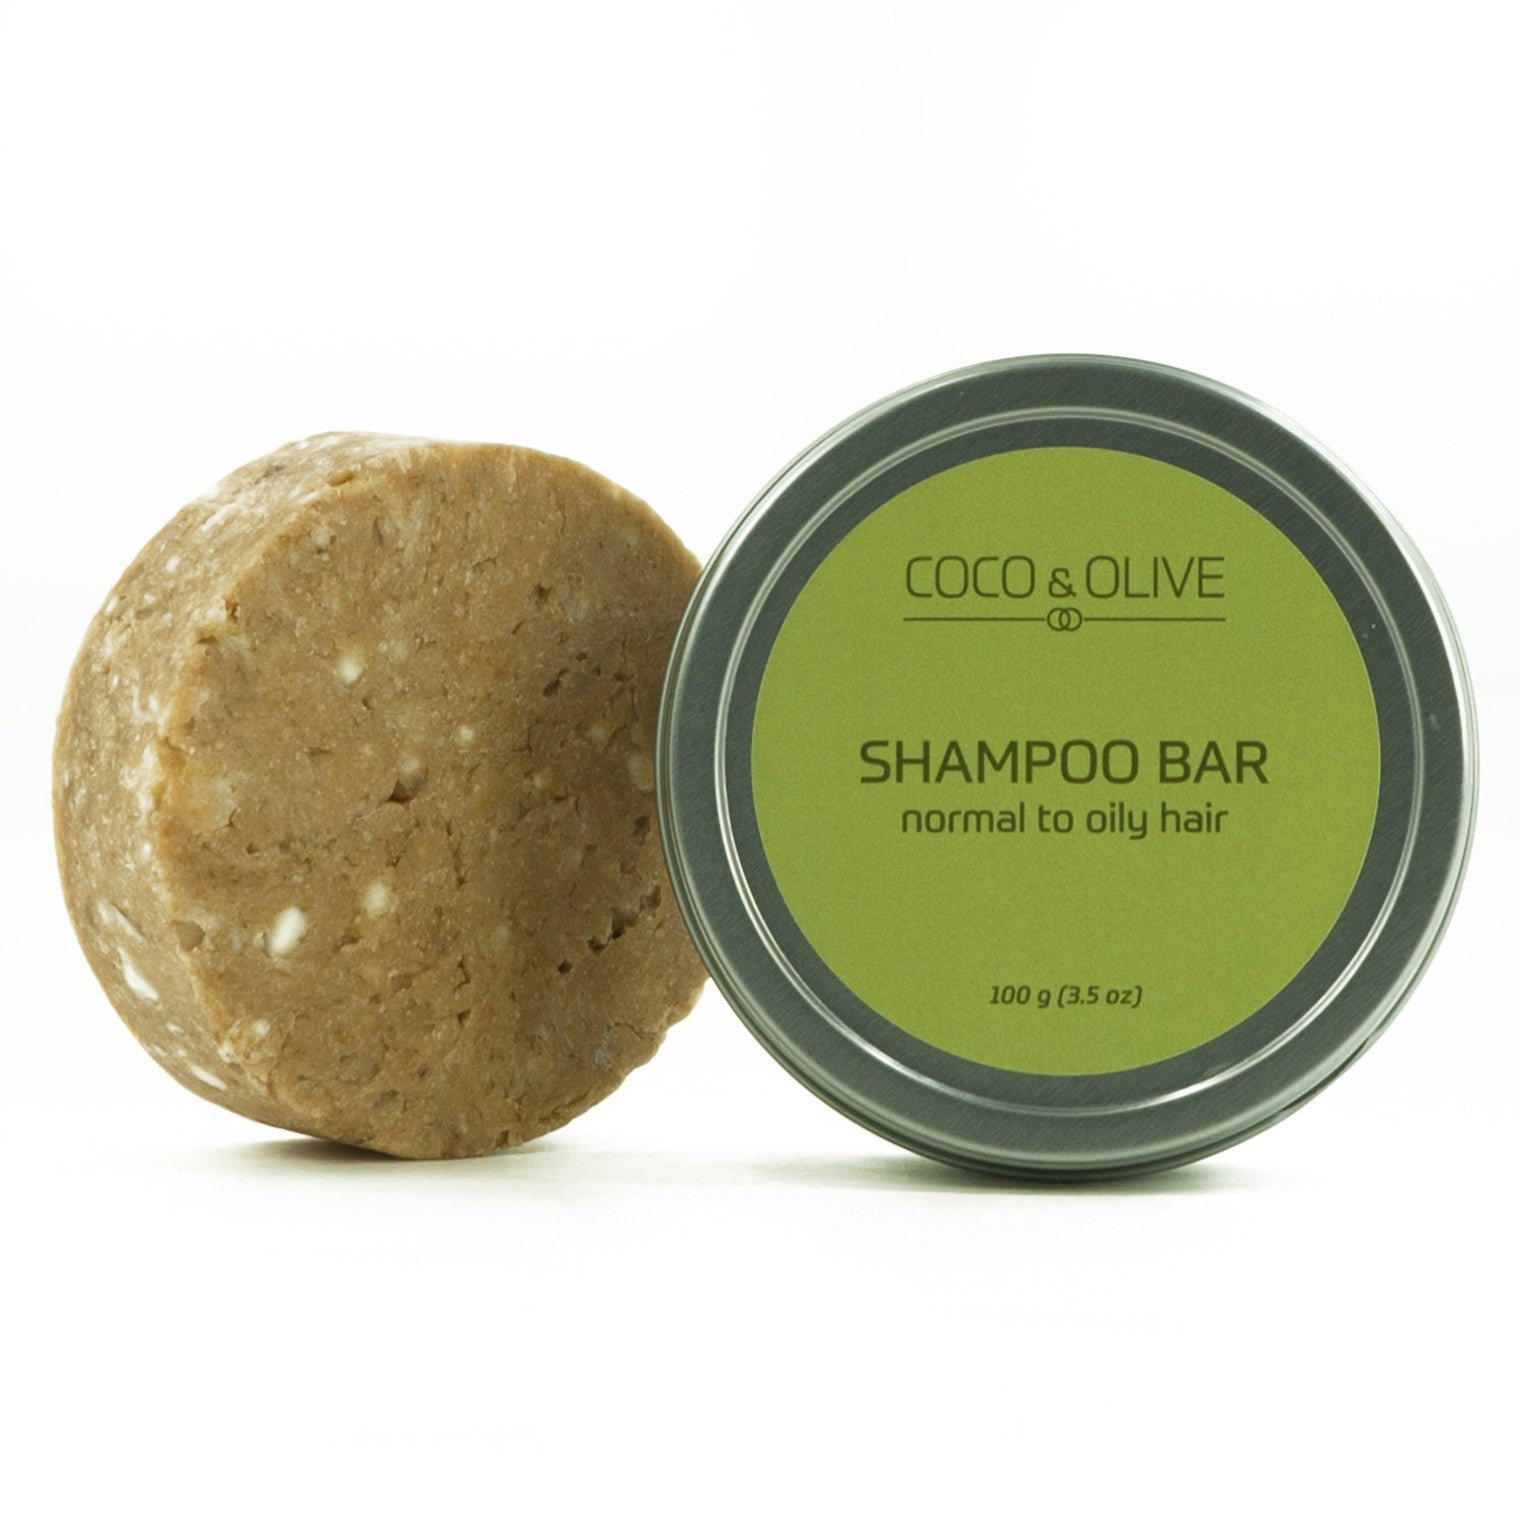 Shampoo Bar: Normal to Oily hair. Provides lots of lather and gentle cleansing without leaving your scalp itchy and dry.